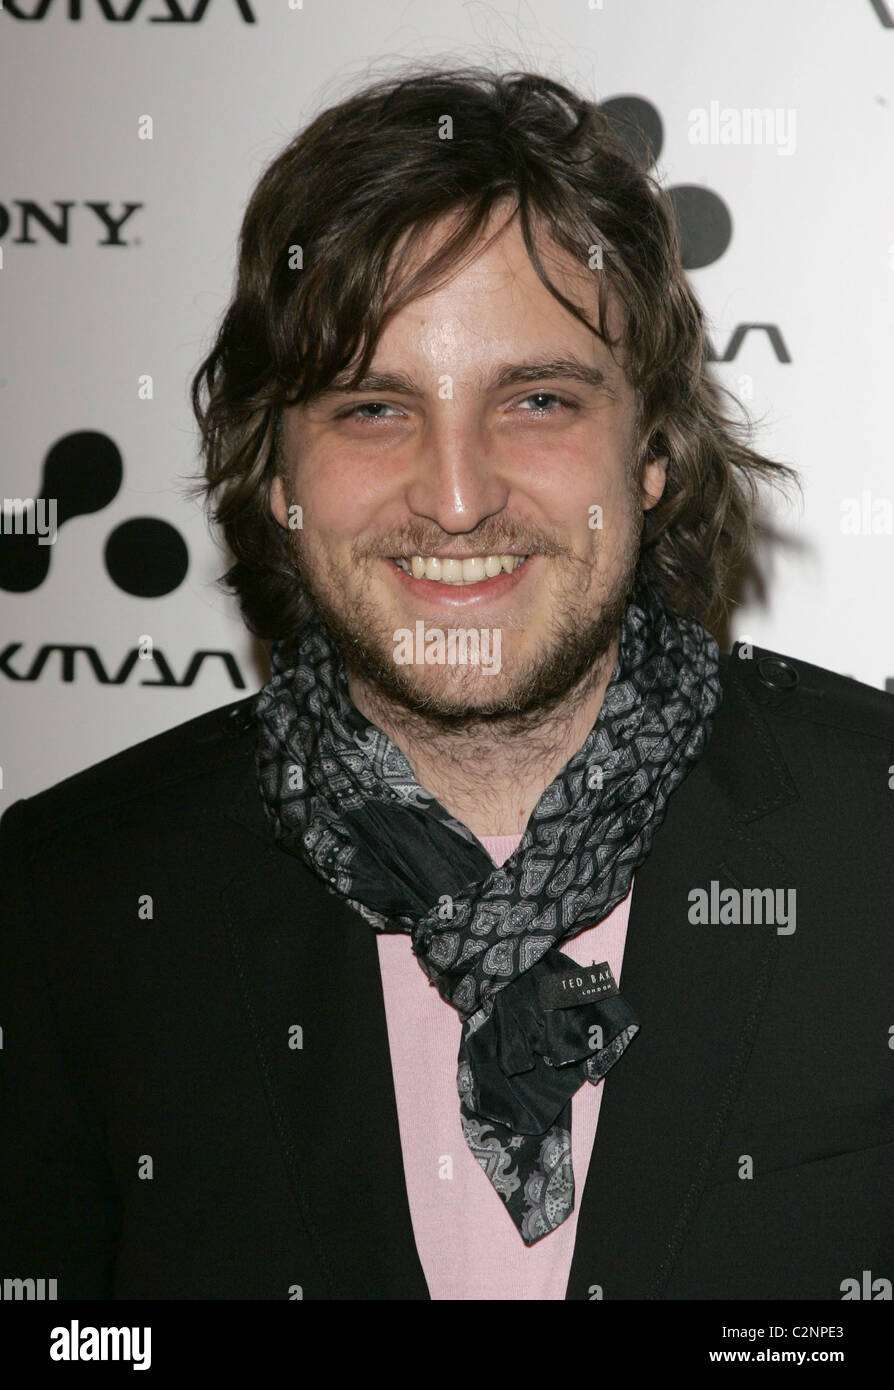 James Walsh Walkman Spring Fling party at Reliance Square - Arrivals London, England - 10.04.08 - Stock Image